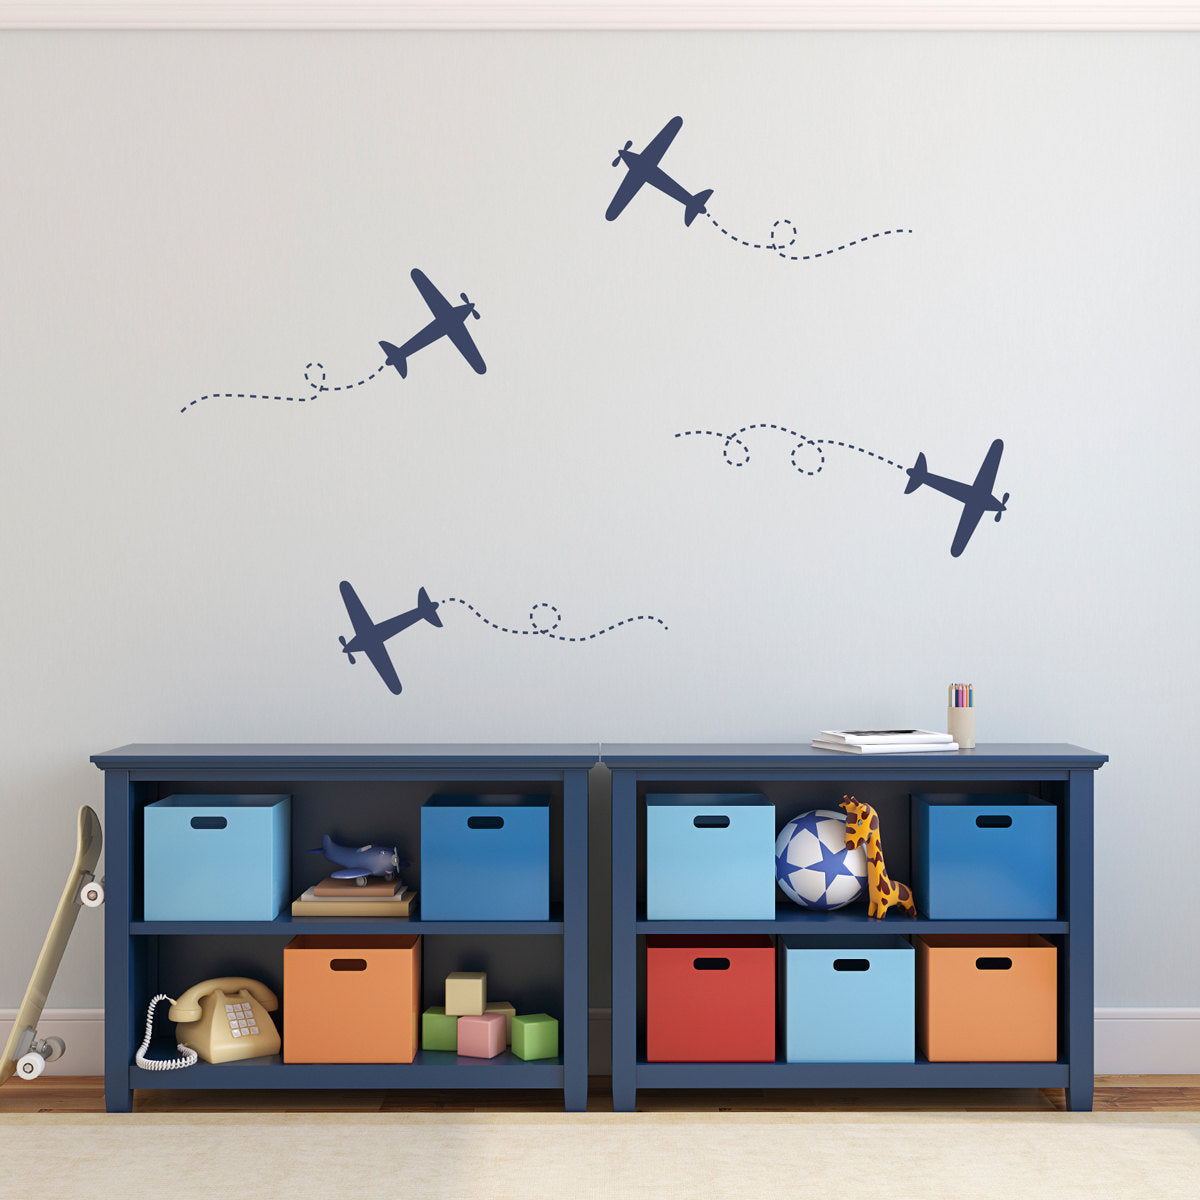 Airplane Wall Decal Set   Plane Wall Stickers   Set Of 4 Airplane Deca    Stephen Edward Graphics